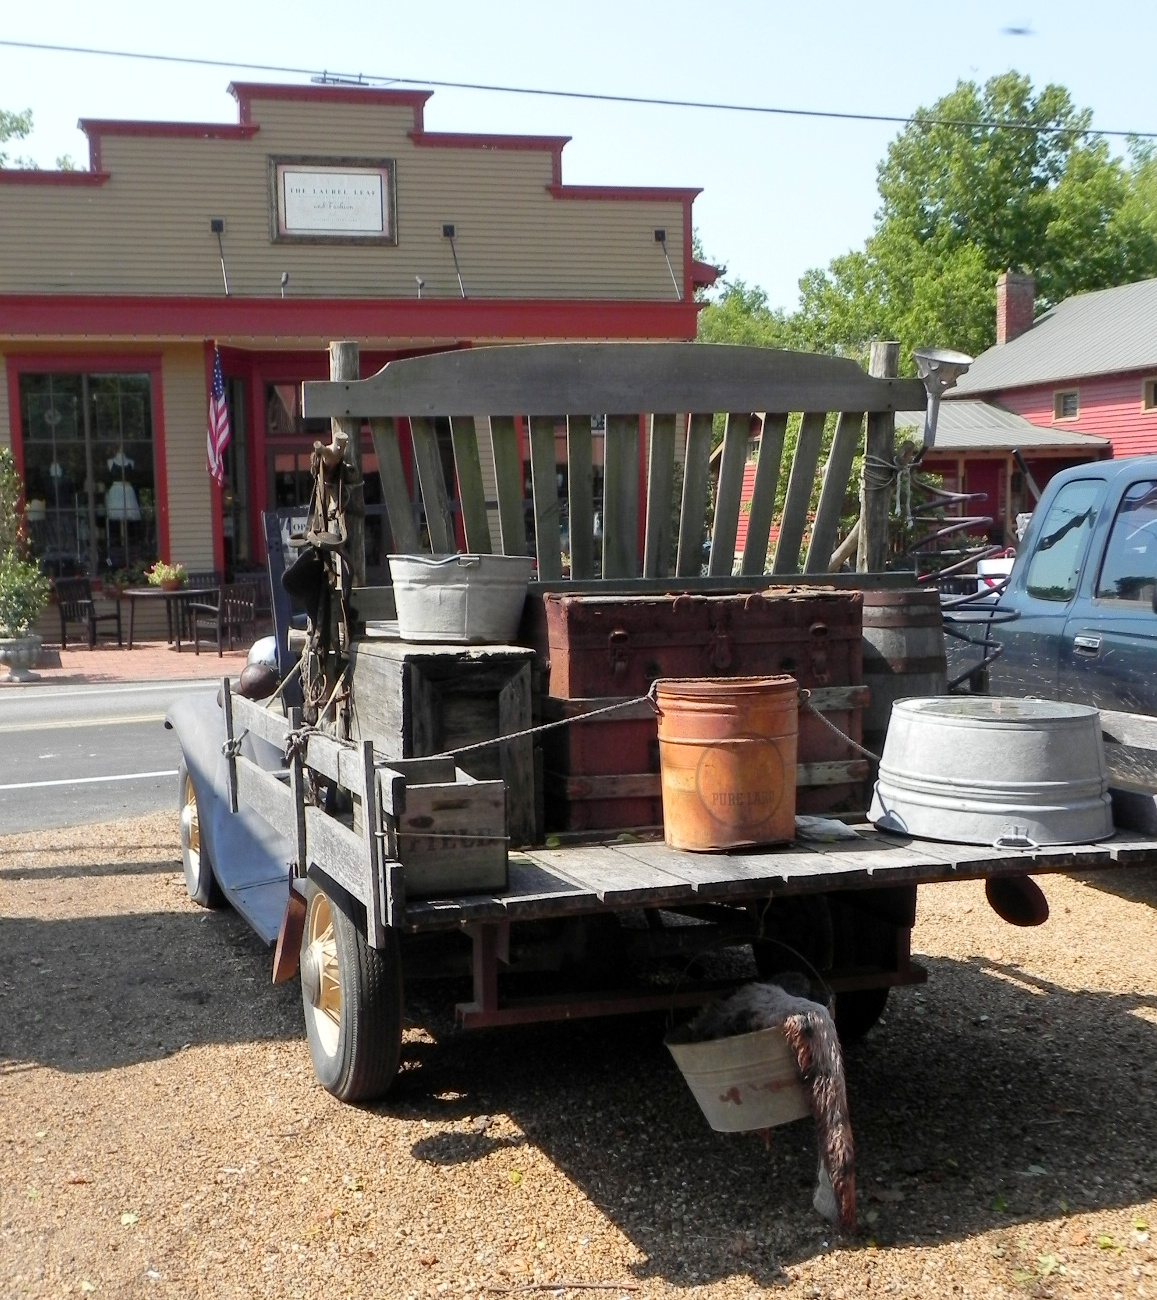 Gone Walkabout 2: A Day Trip For Shopping In Leiper's Fork, TN